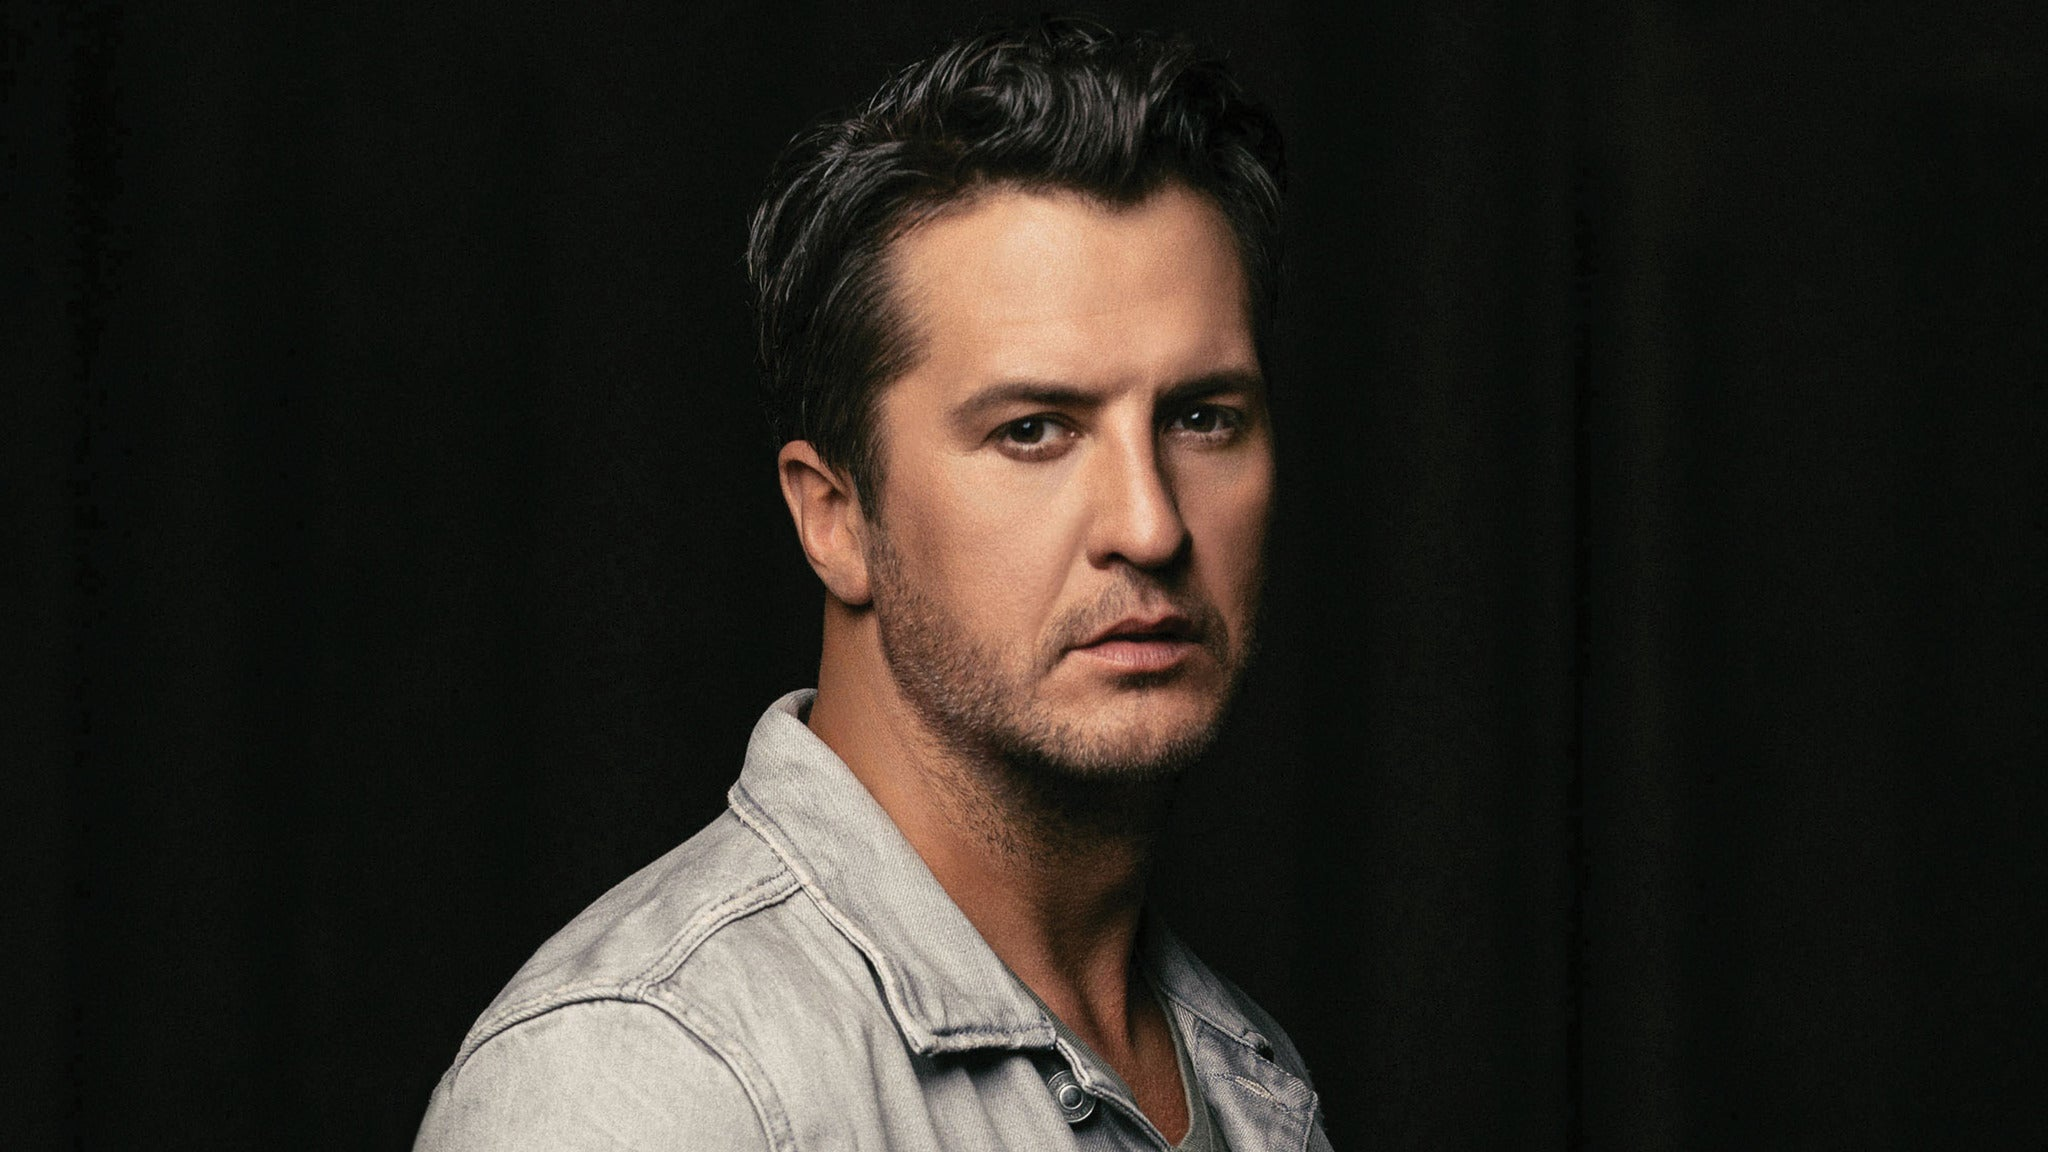 Luke Bryan: Proud To Be Right Here Tour 2021